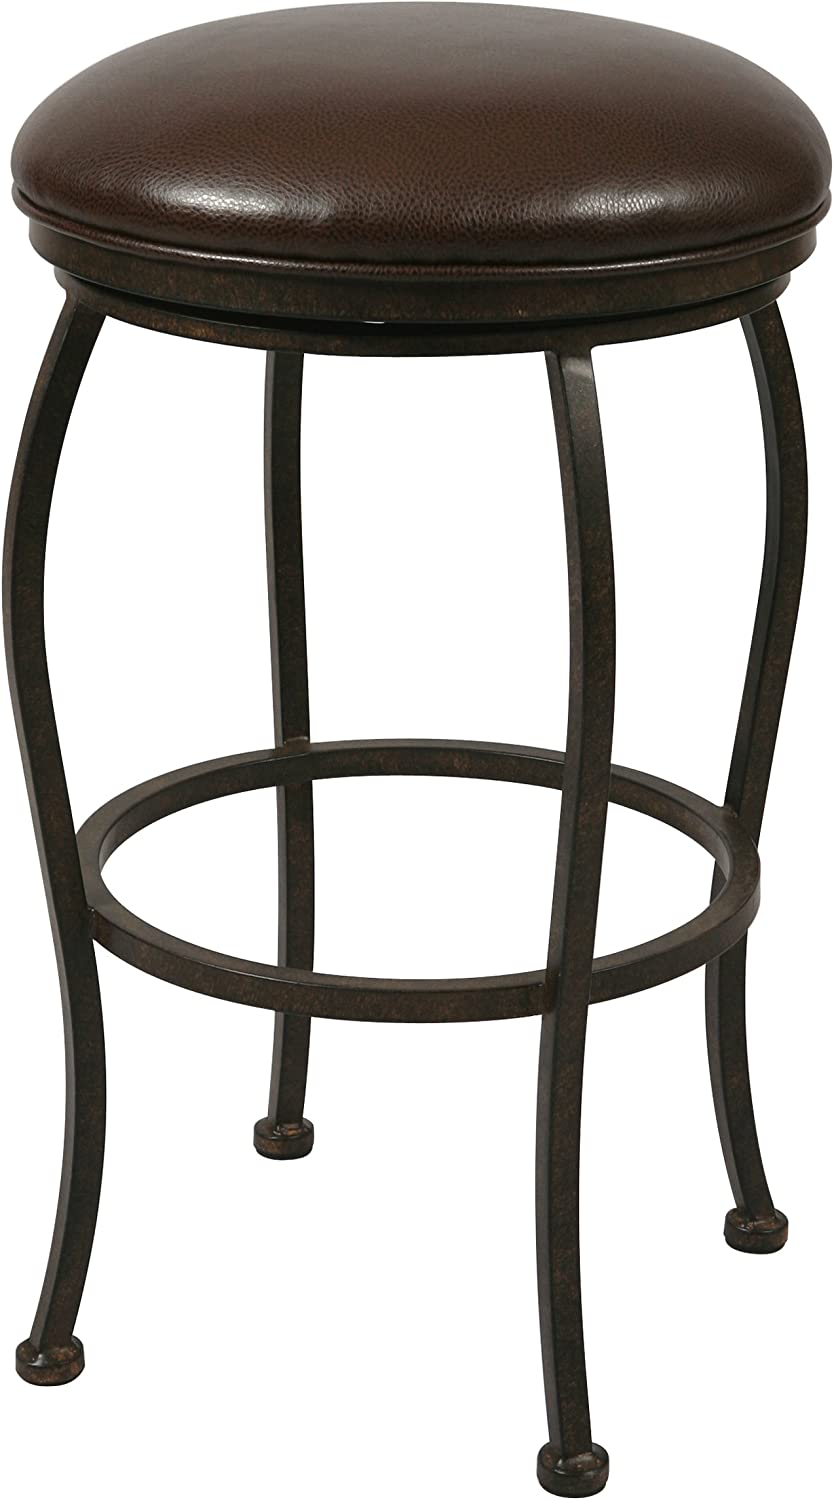 Impacterra Island Falls Backless Barstool 26-Inch, Ford Brown, (QLIF215339945)